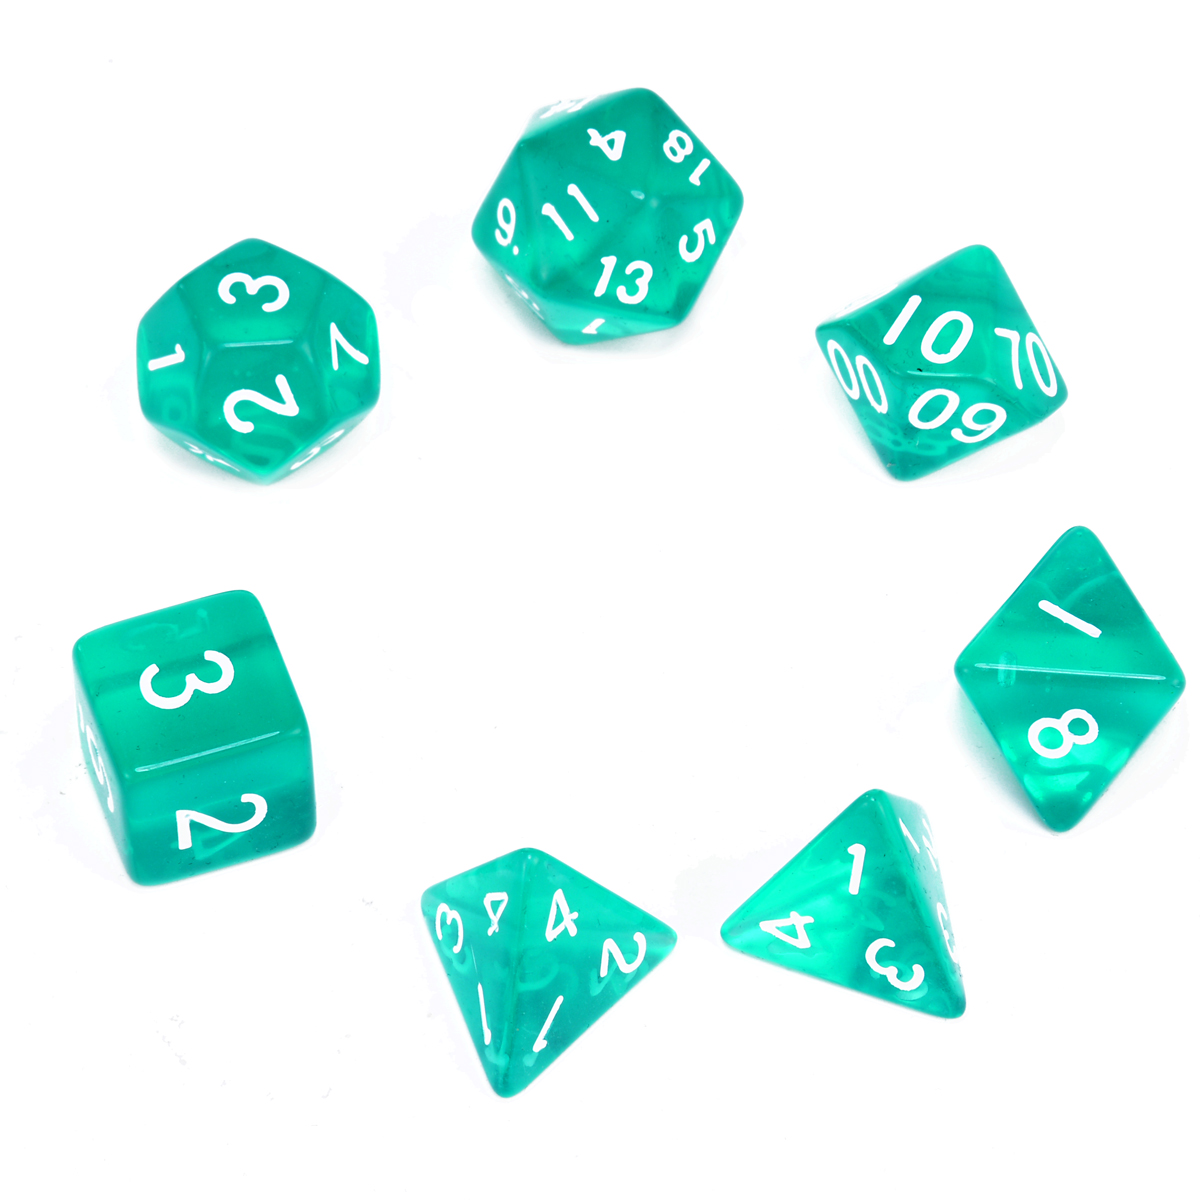 Green Translucent Dices With Bag 7x Polyhedral Dice Set For Dragons and Dungeons  RPG D4 - D20 School Bar Gambling Outdoor Games